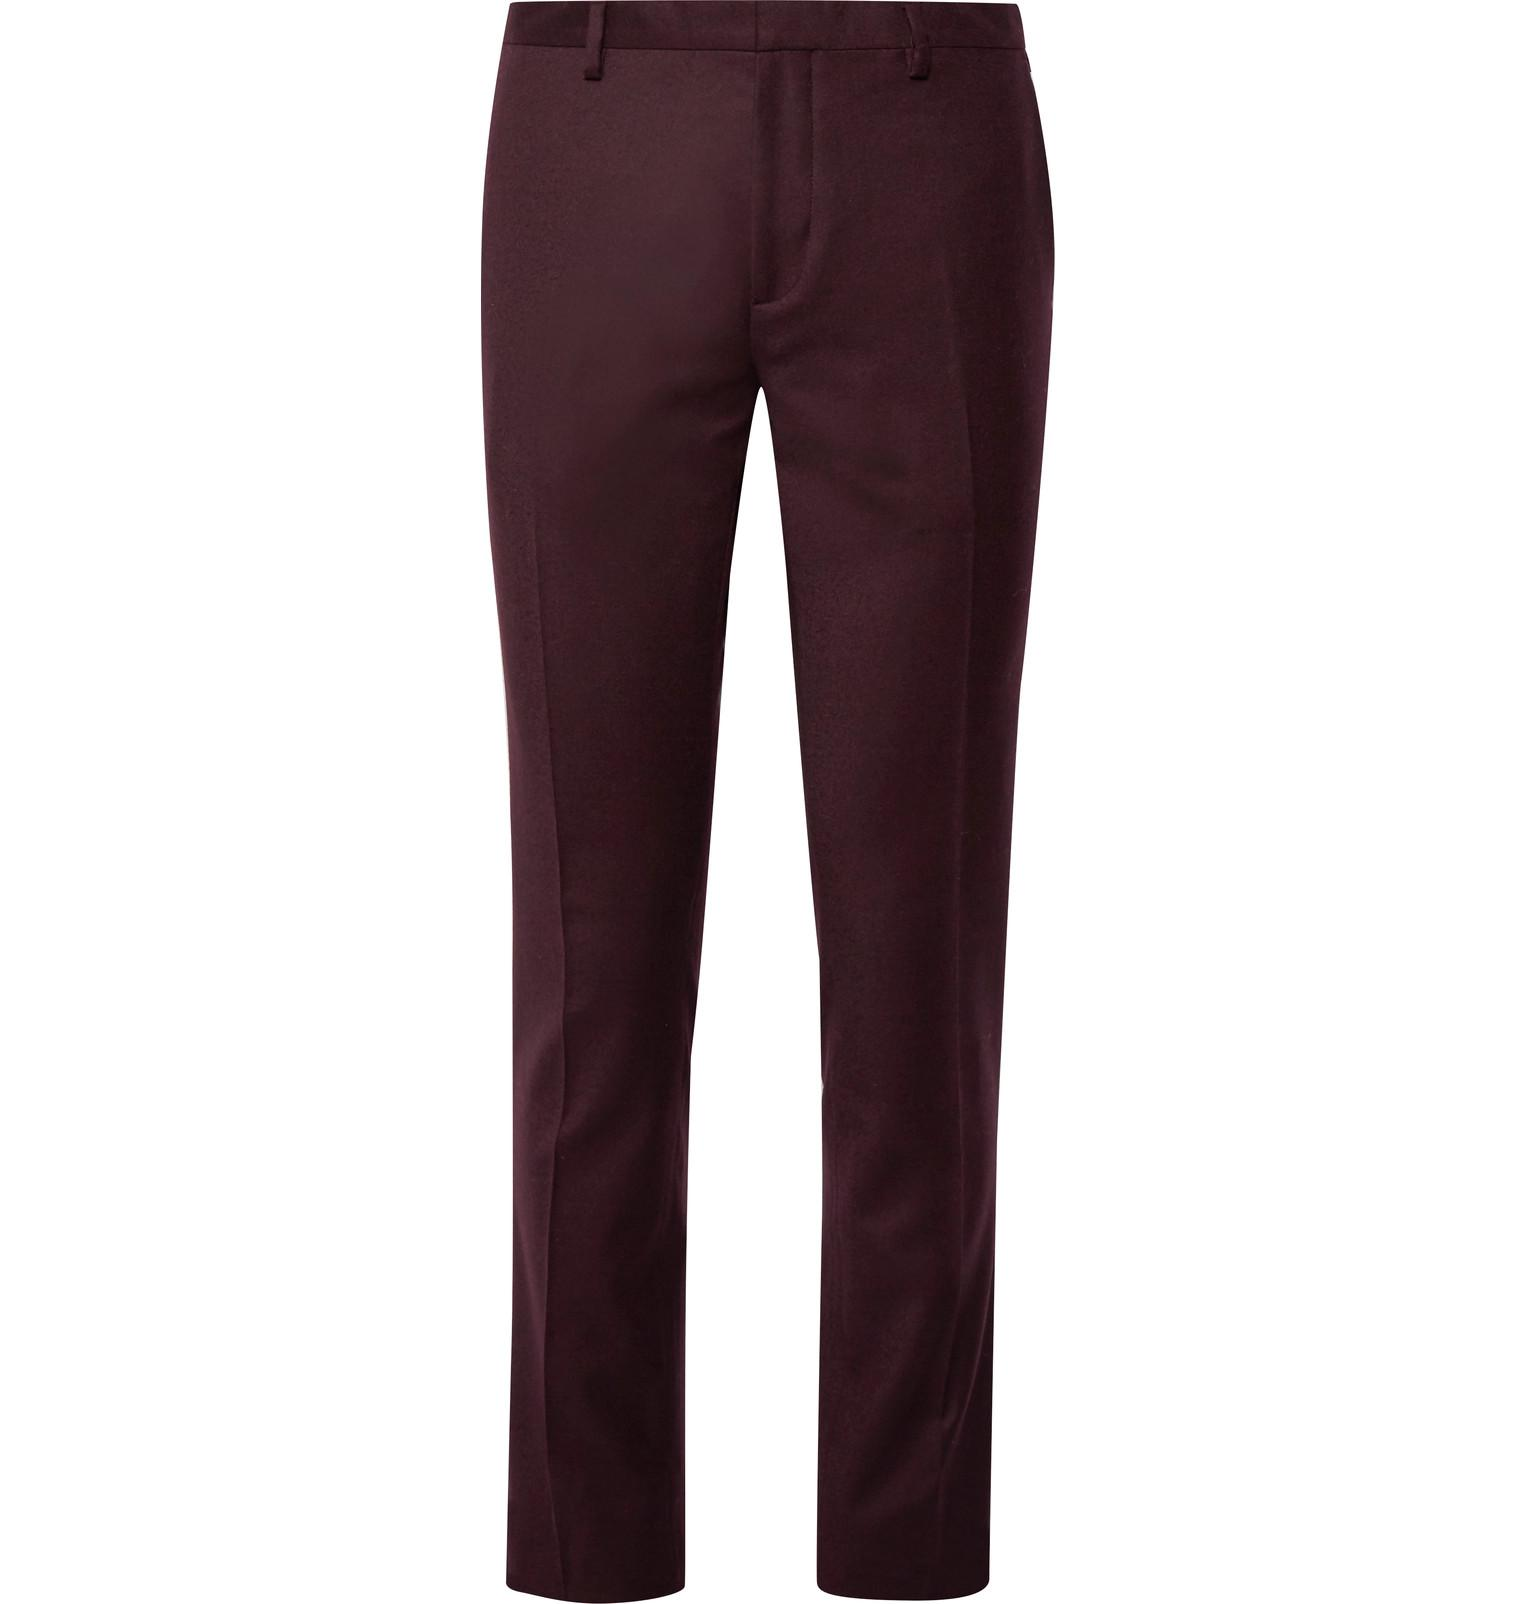 88568d96303 Paul Smith Burgundy Slim-fit Wool And Cashmere-blend Suit Trousers ...